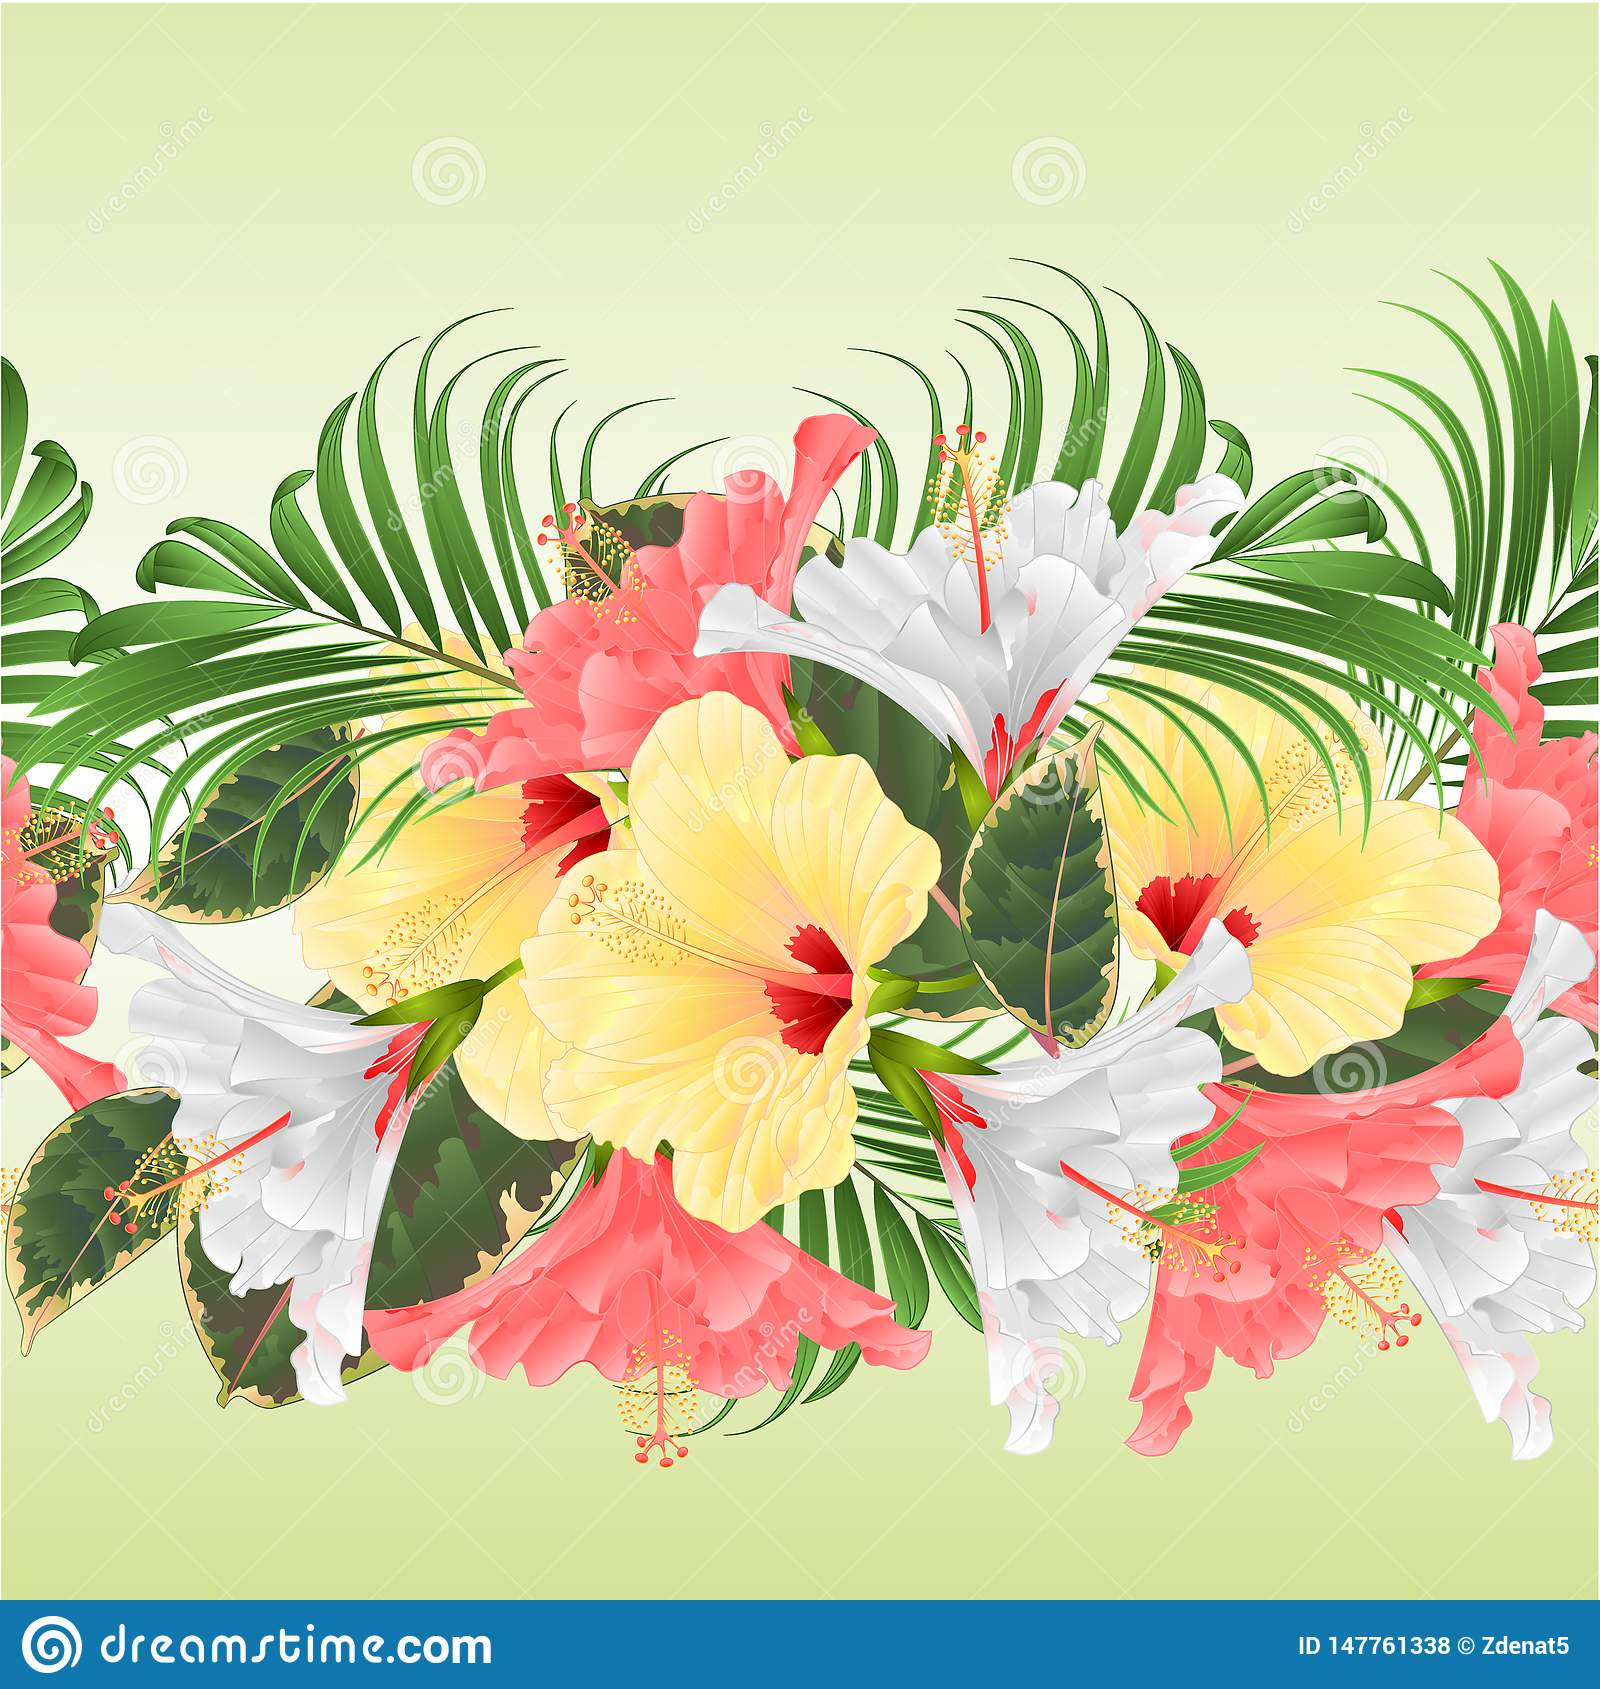 Seamless Border Tropical Flowers Floral Arrangement With Pink White